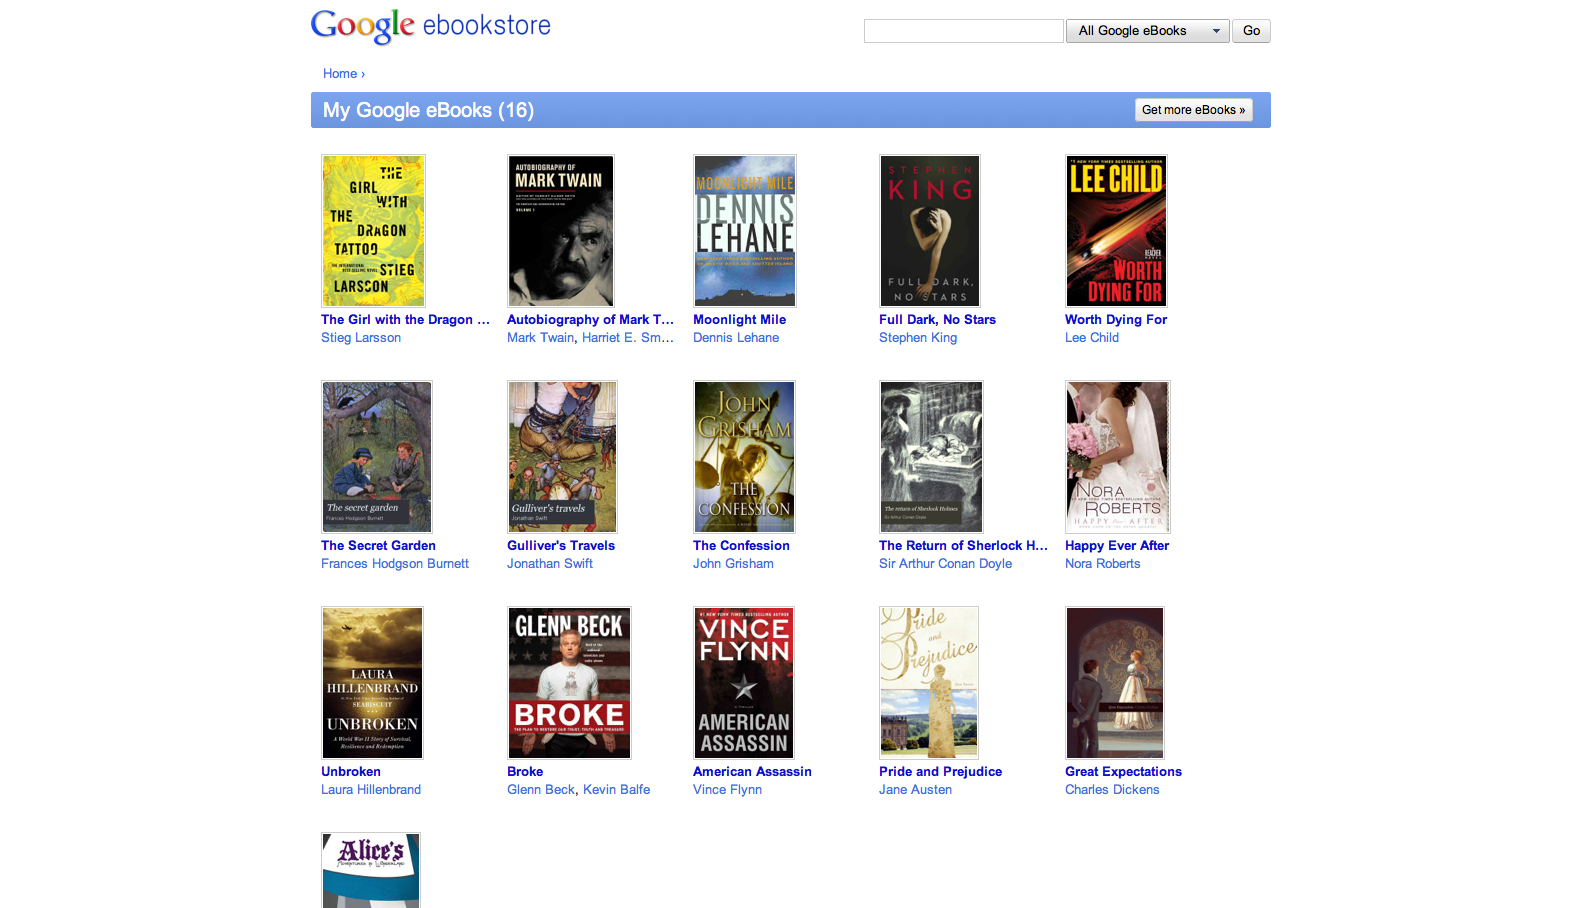 A look at the dashboard for Google eBooks.